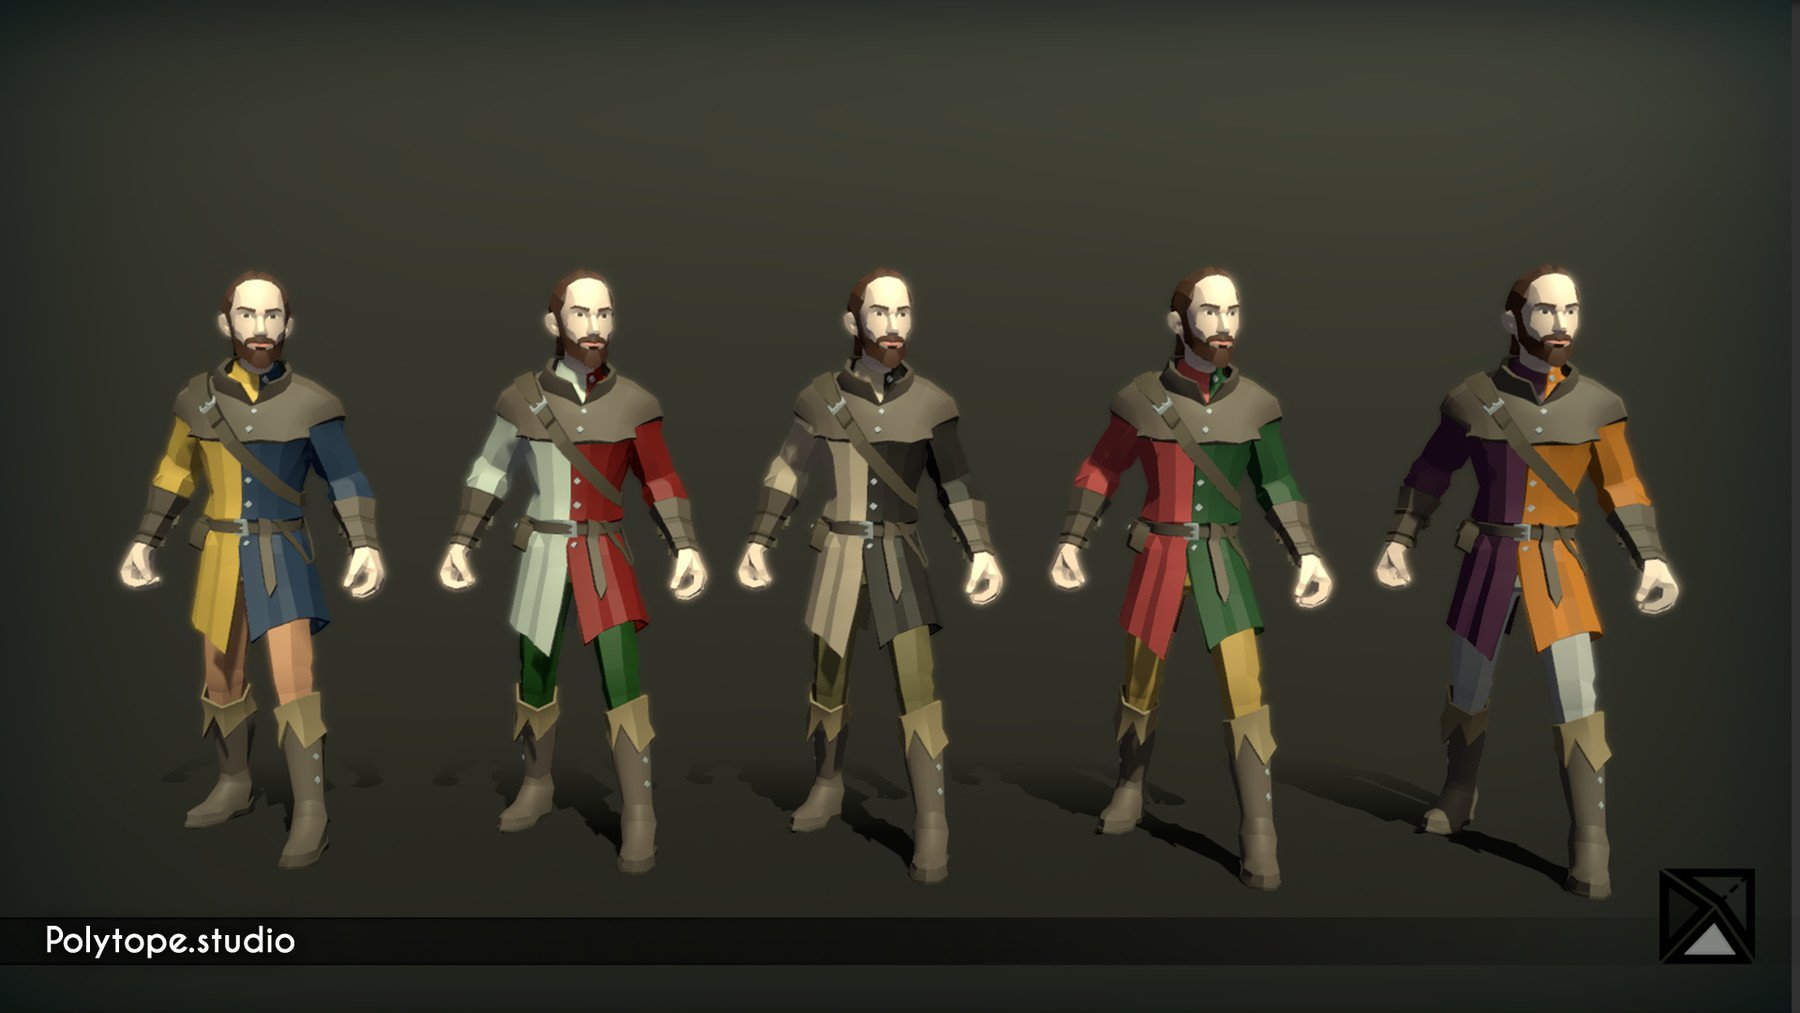 Pt medieval lowpoly weapons soldier